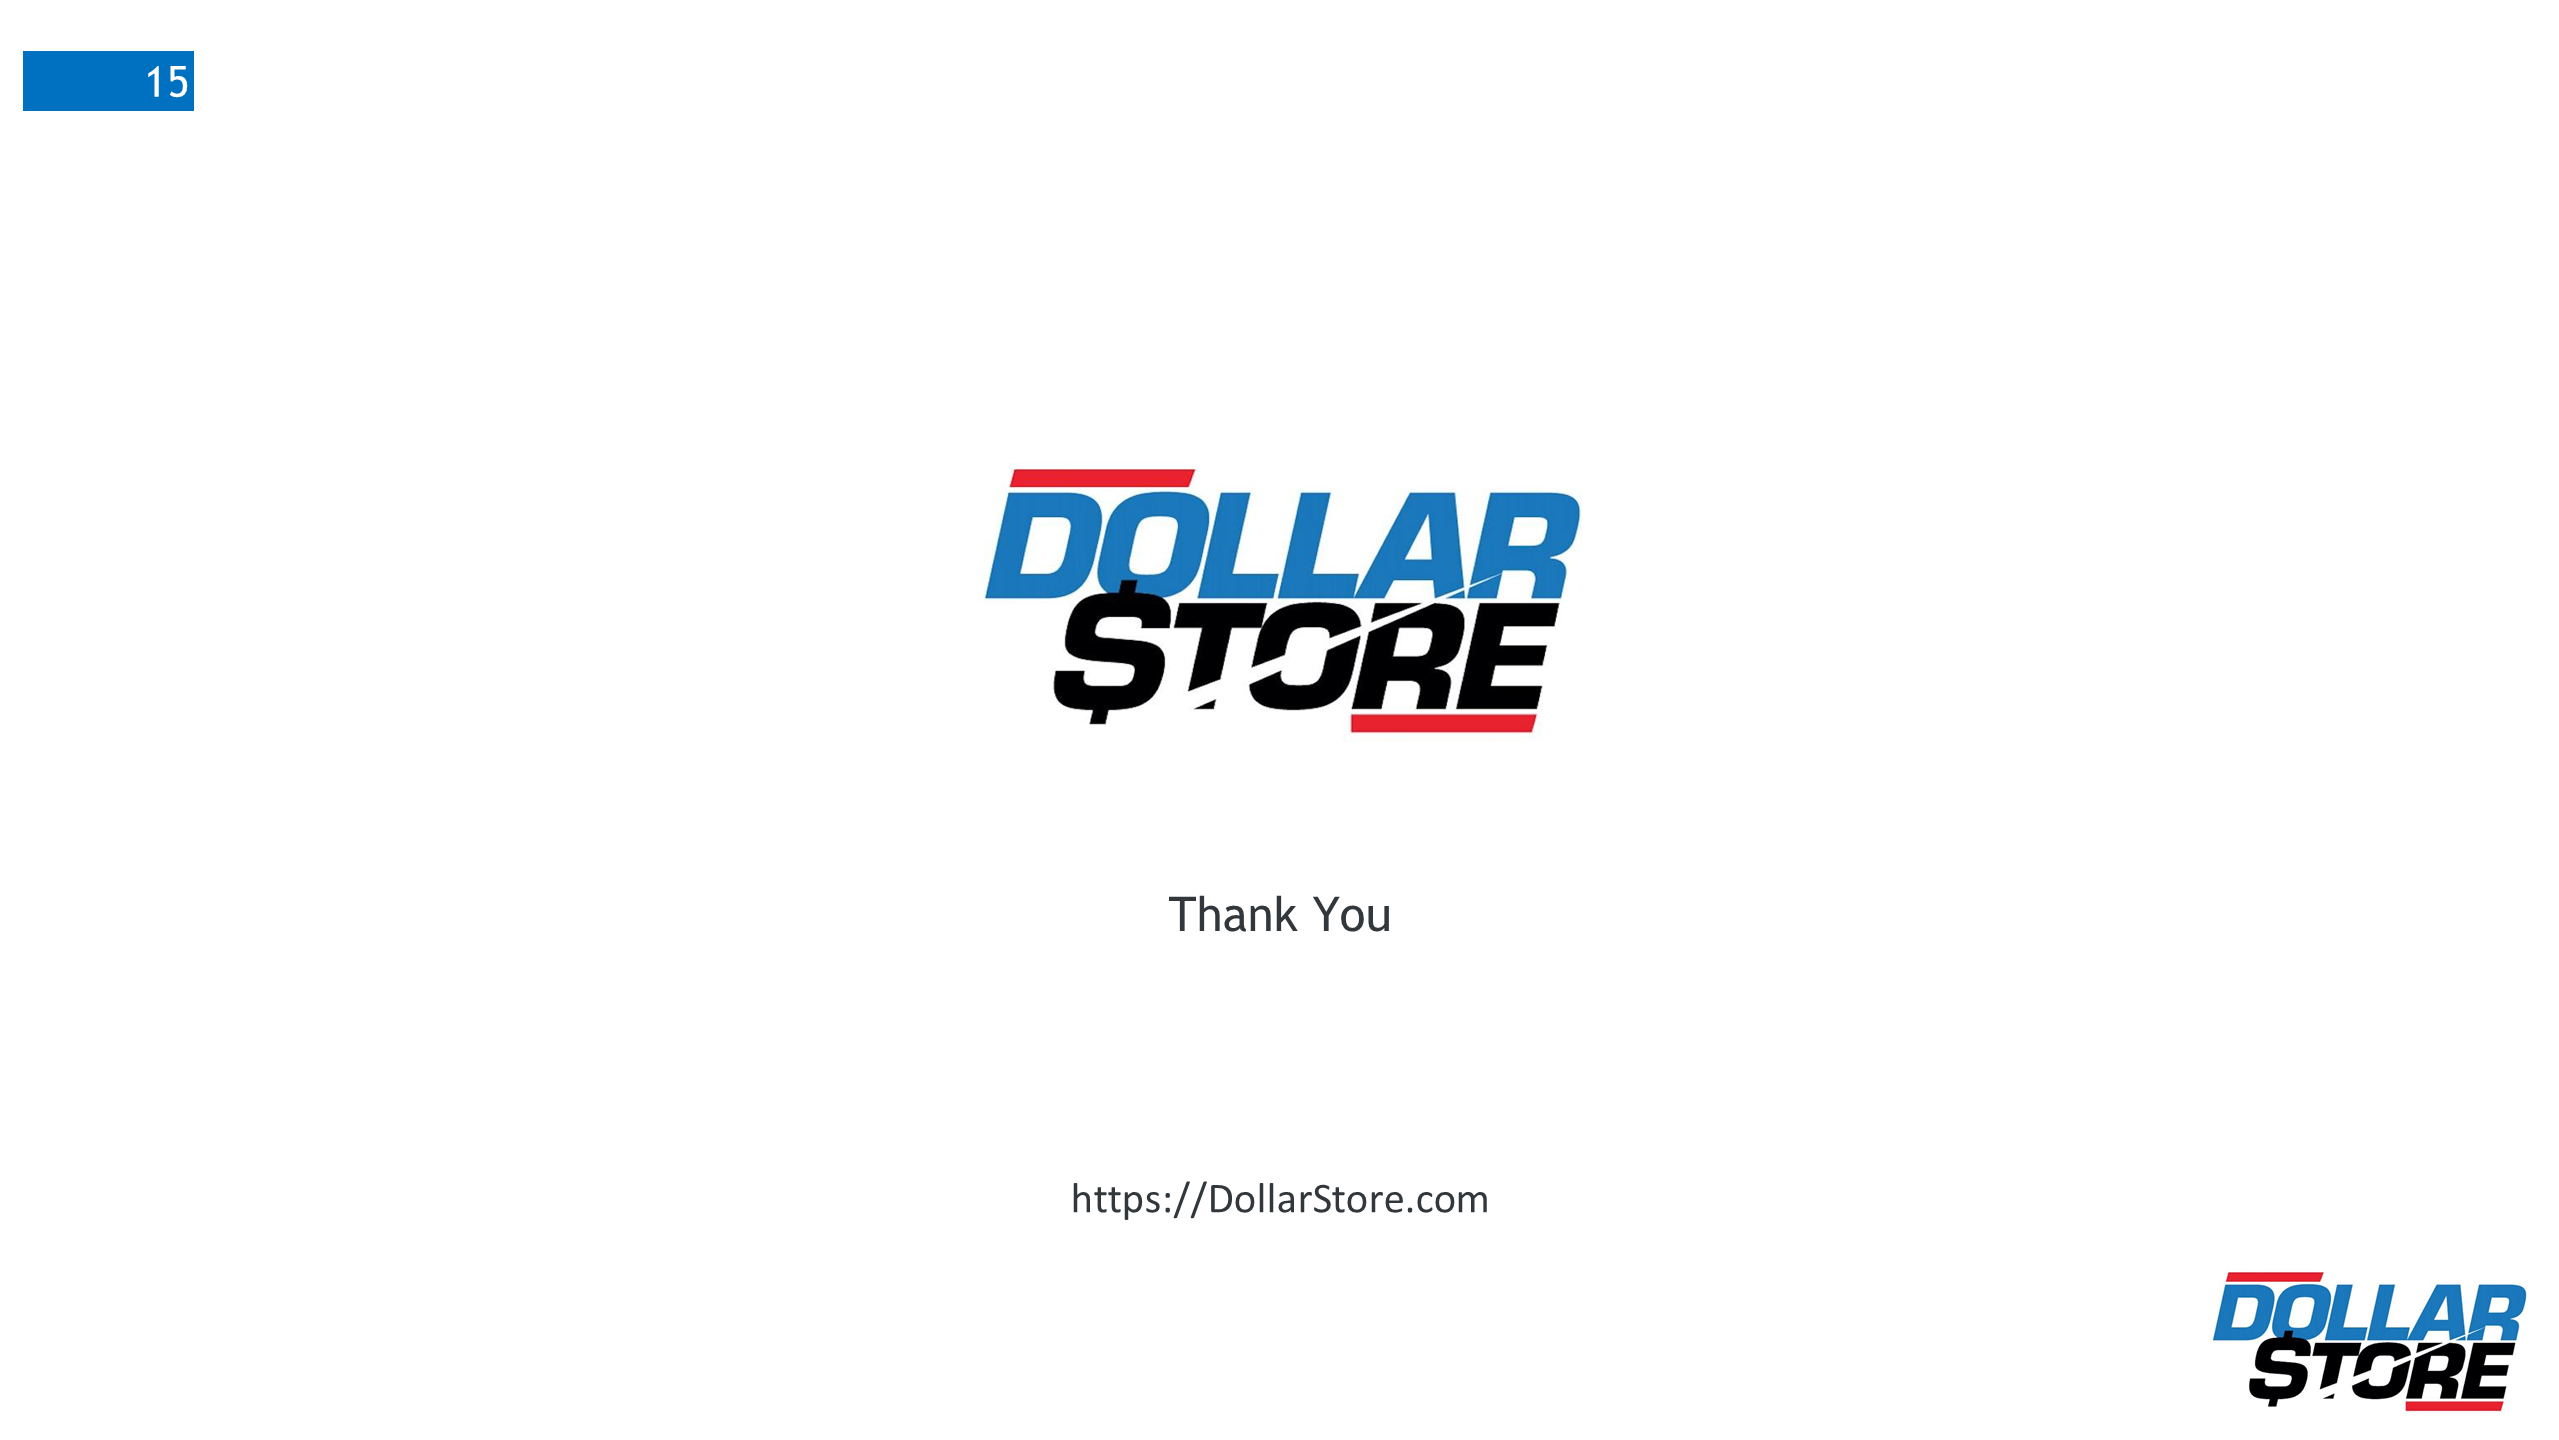 DollarStore a new kind of business